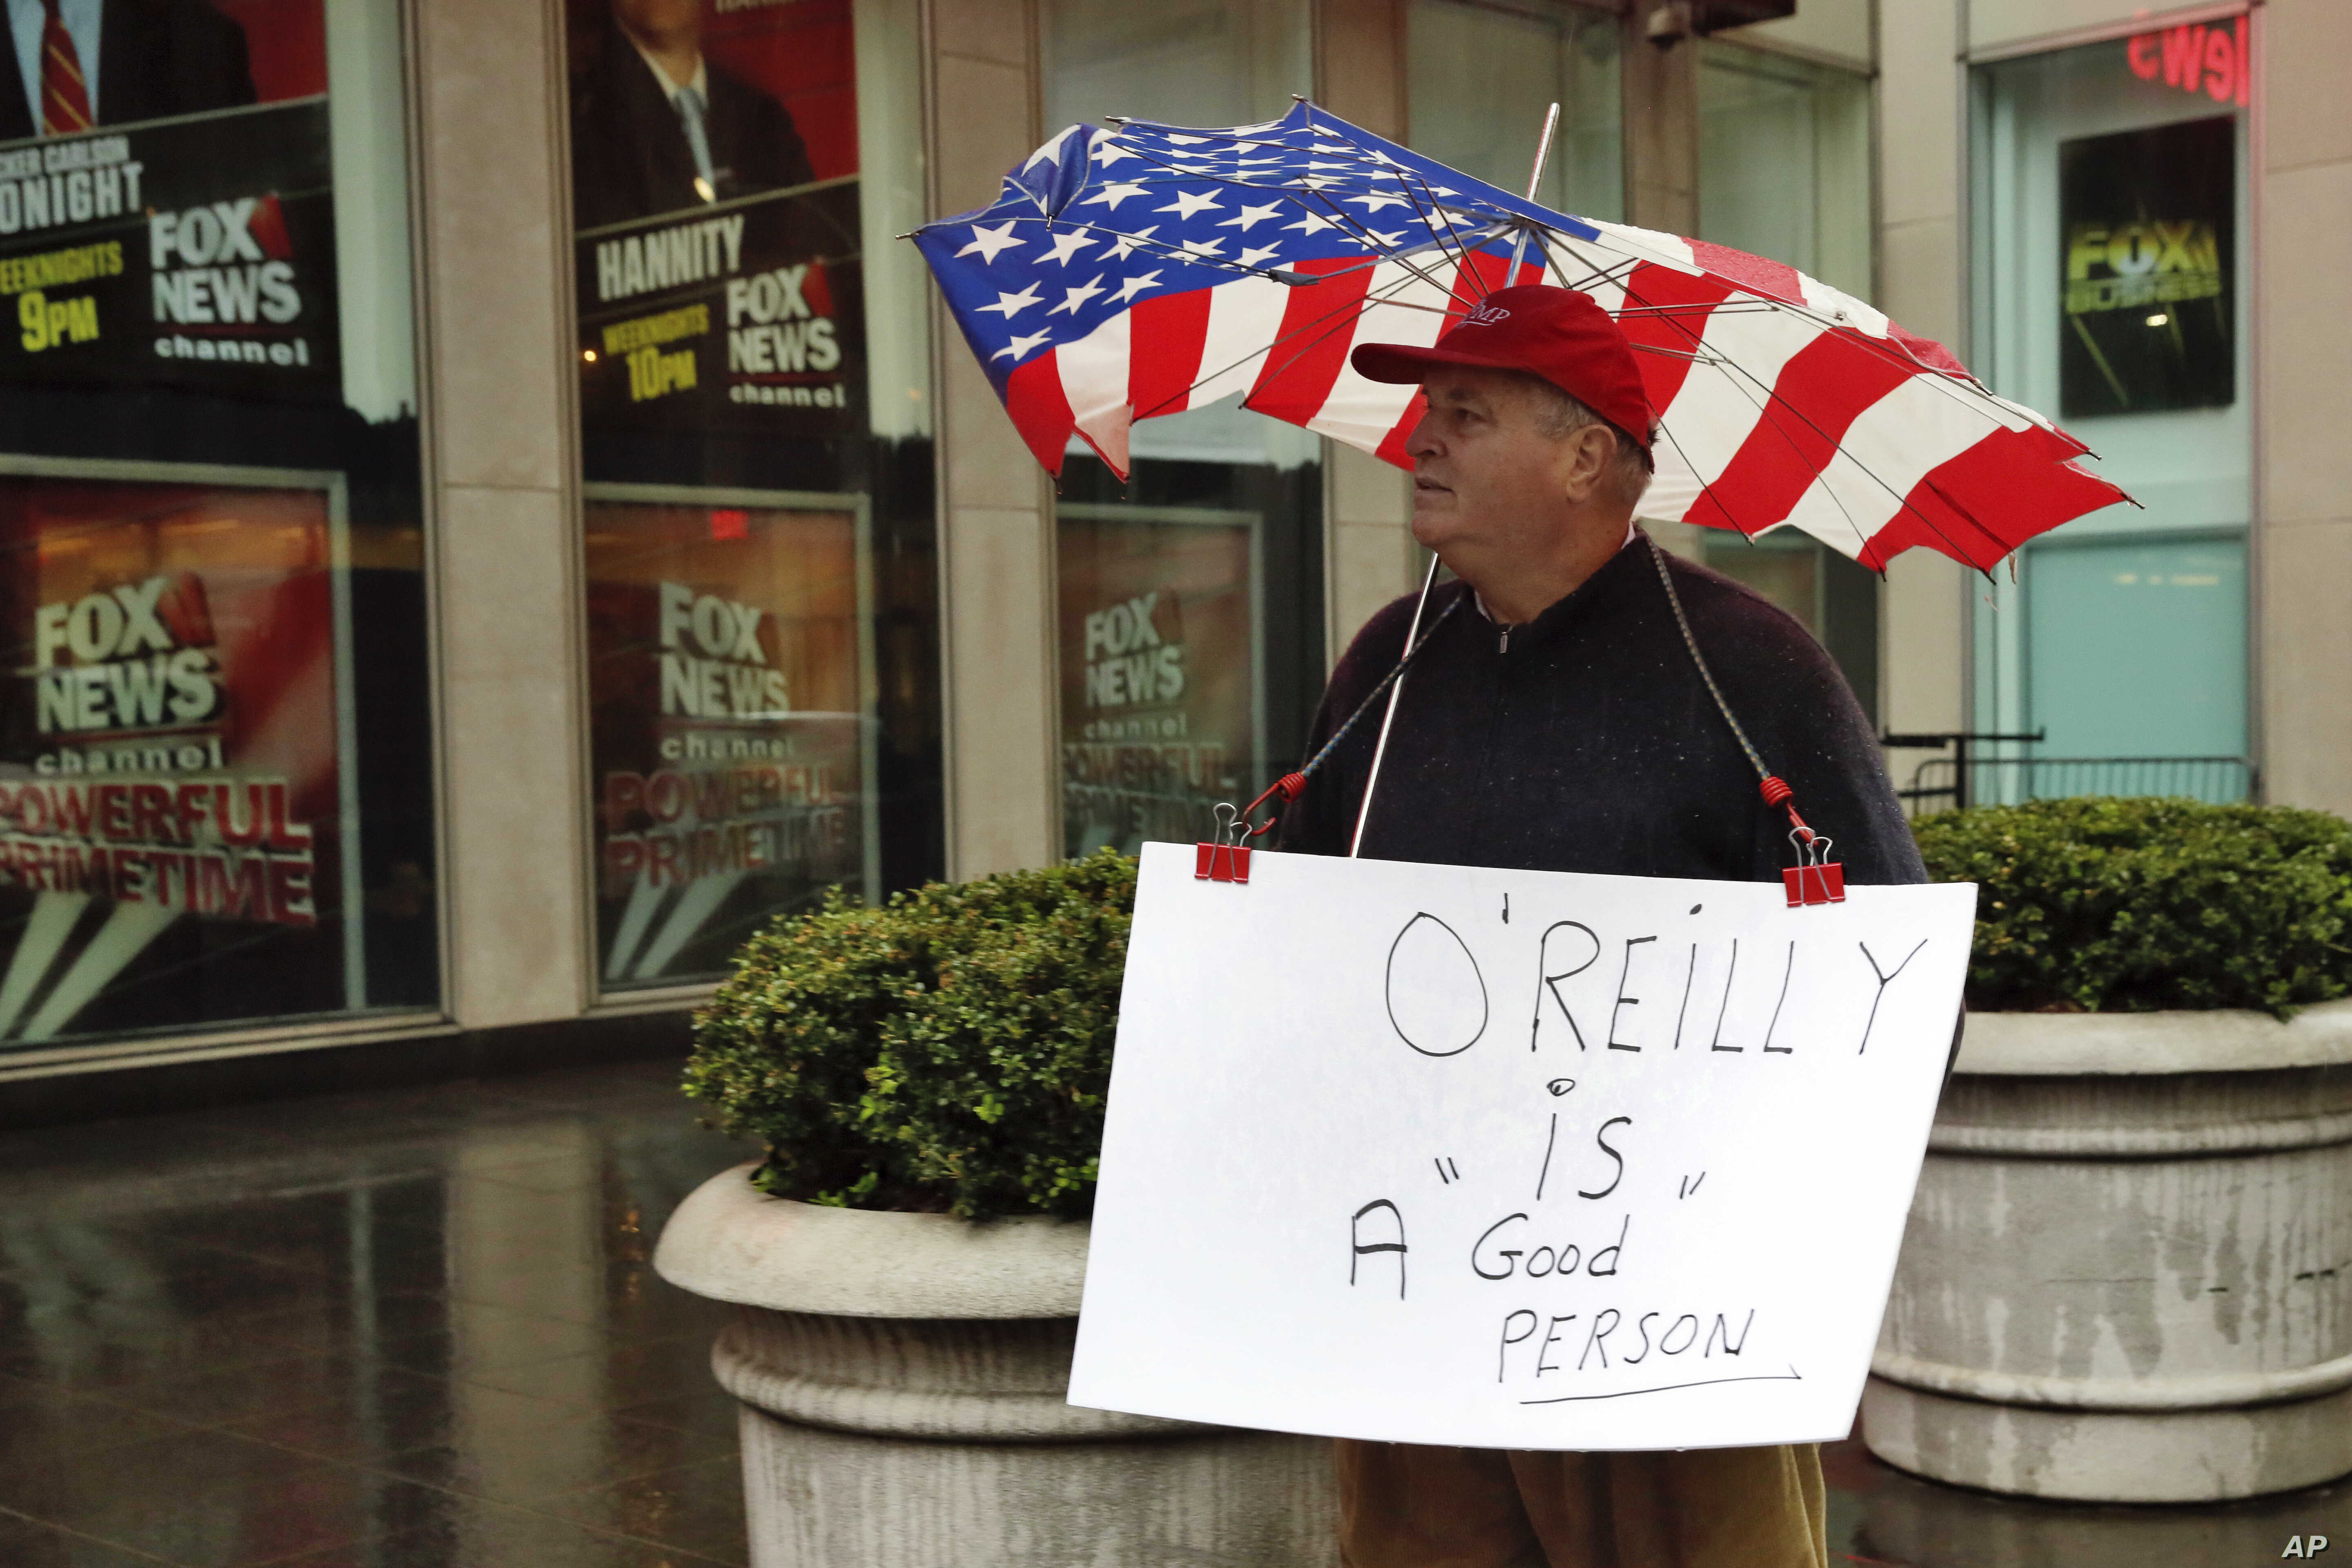 Douglas Esposit, of New York City, wears a Bill O'Reilly sign as he walks by the Fox television studios in New York, April 20, 2017. Despite the inglorious end to O'Reilly's two-decade Fox News Channel career, observers say his deep imprint on Fox an...